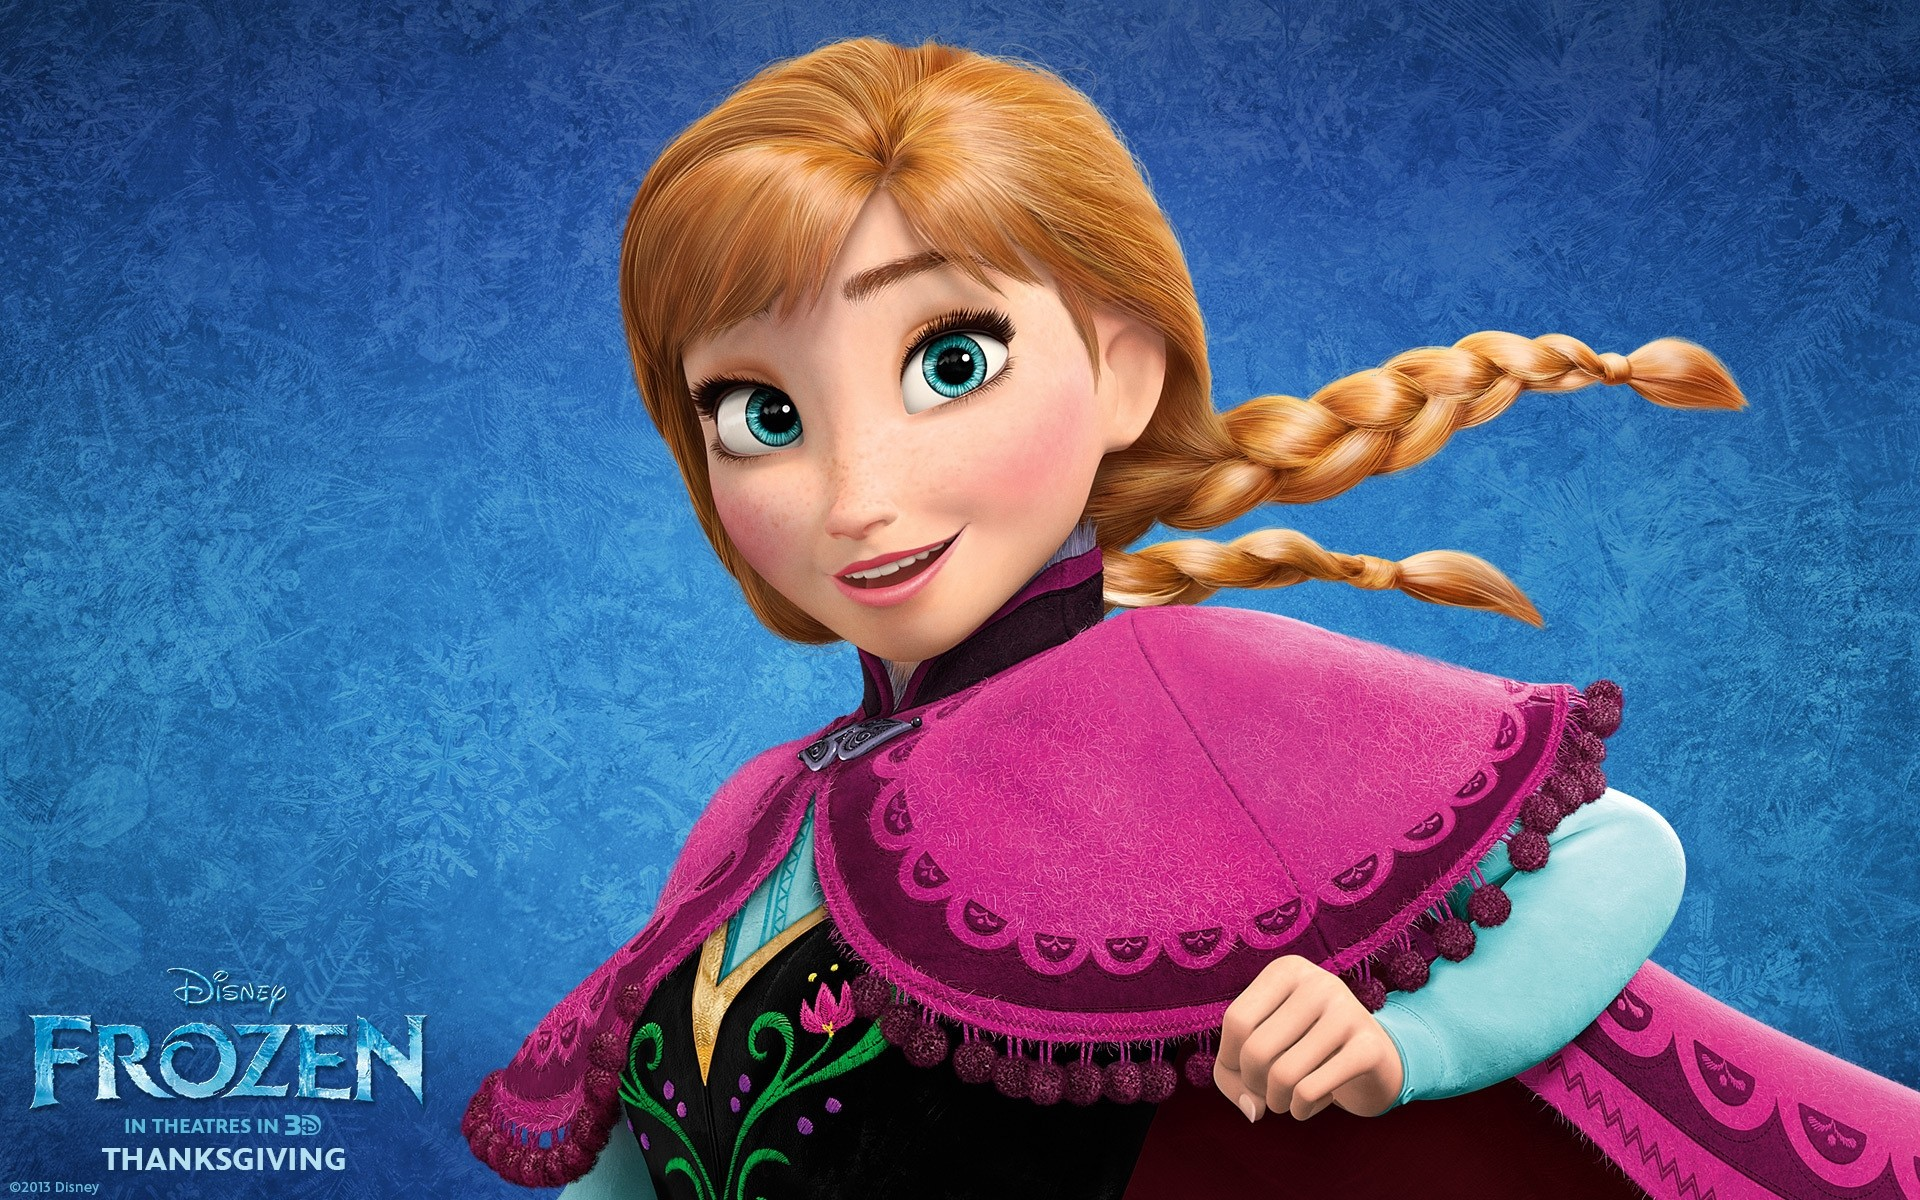 movies woman fashion retro cute pretty child frozen film disney